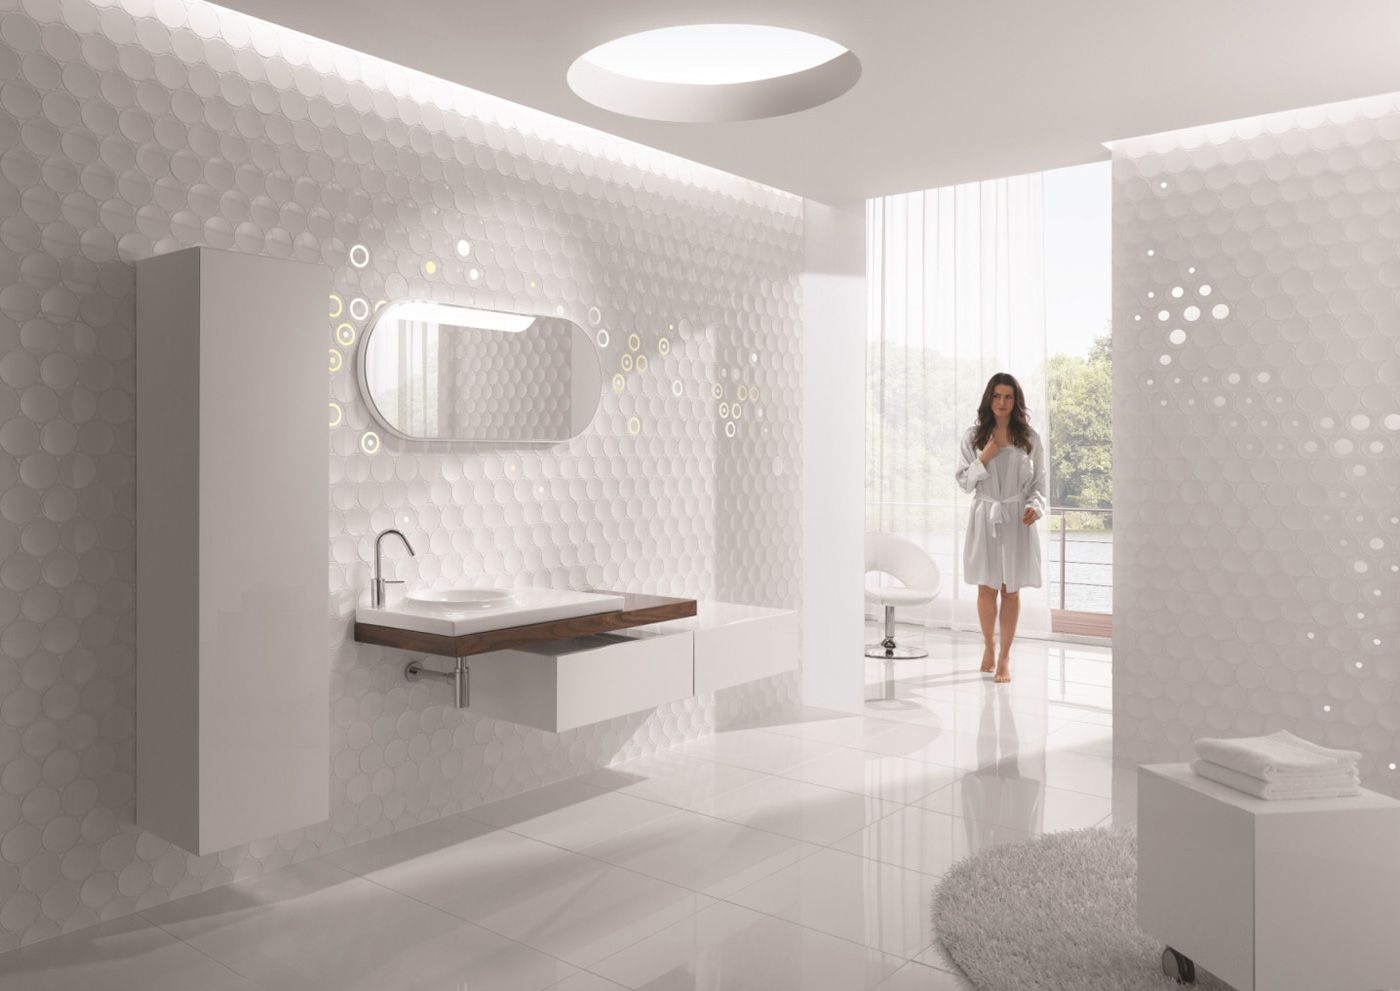 White Bathroom Design Ideas Adorable Small Bathroom Design White Enchanting Bathroom Tile Ideas And Design Decoration